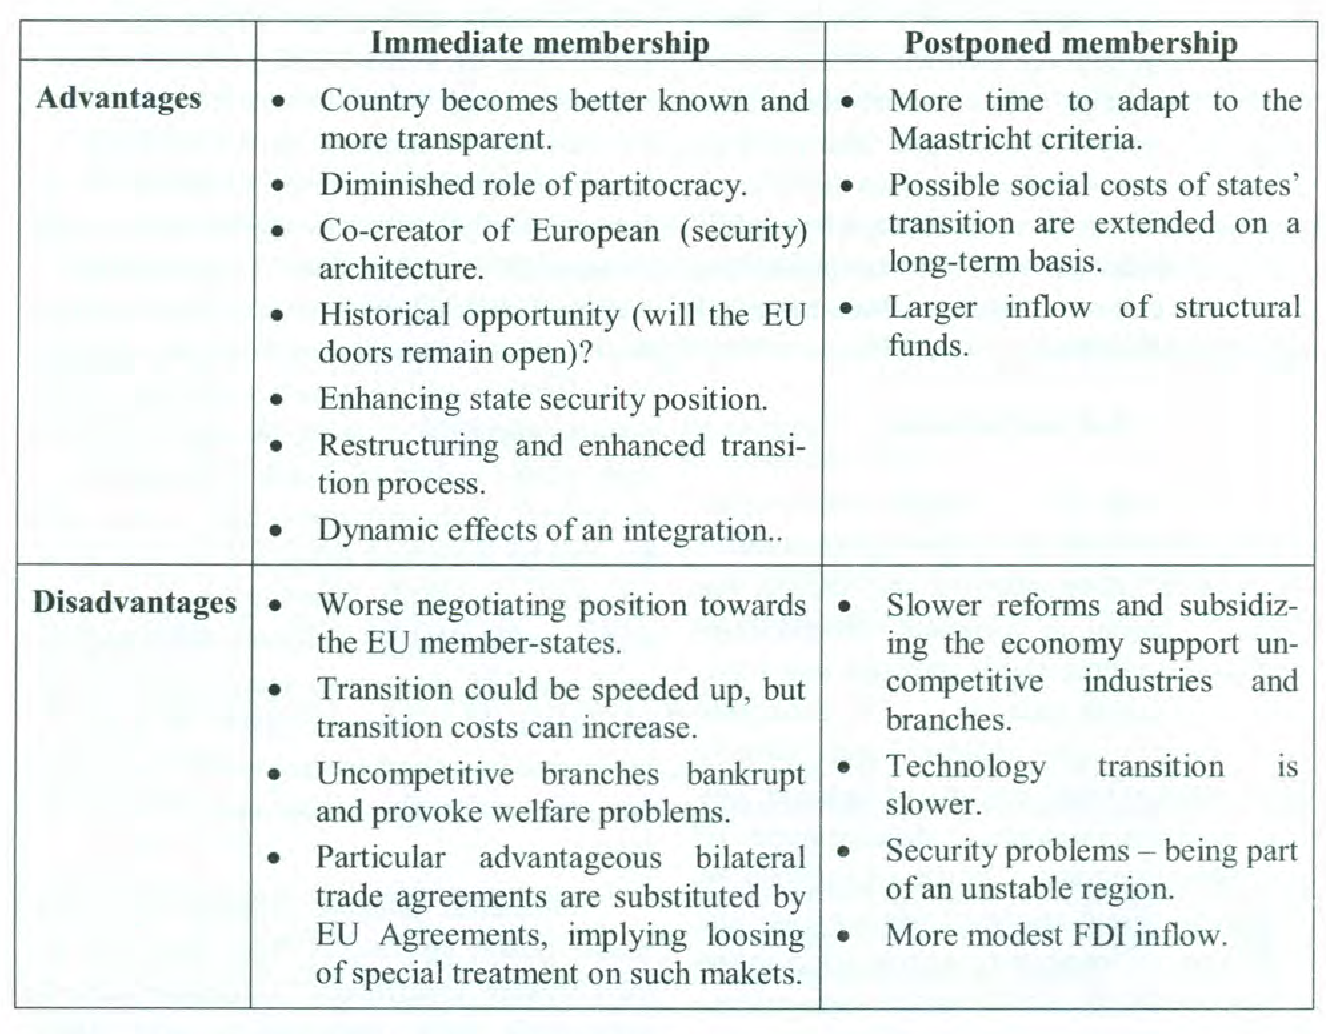 Table 8 From Advantages And Disadvantages Of Immediate Or Postponed